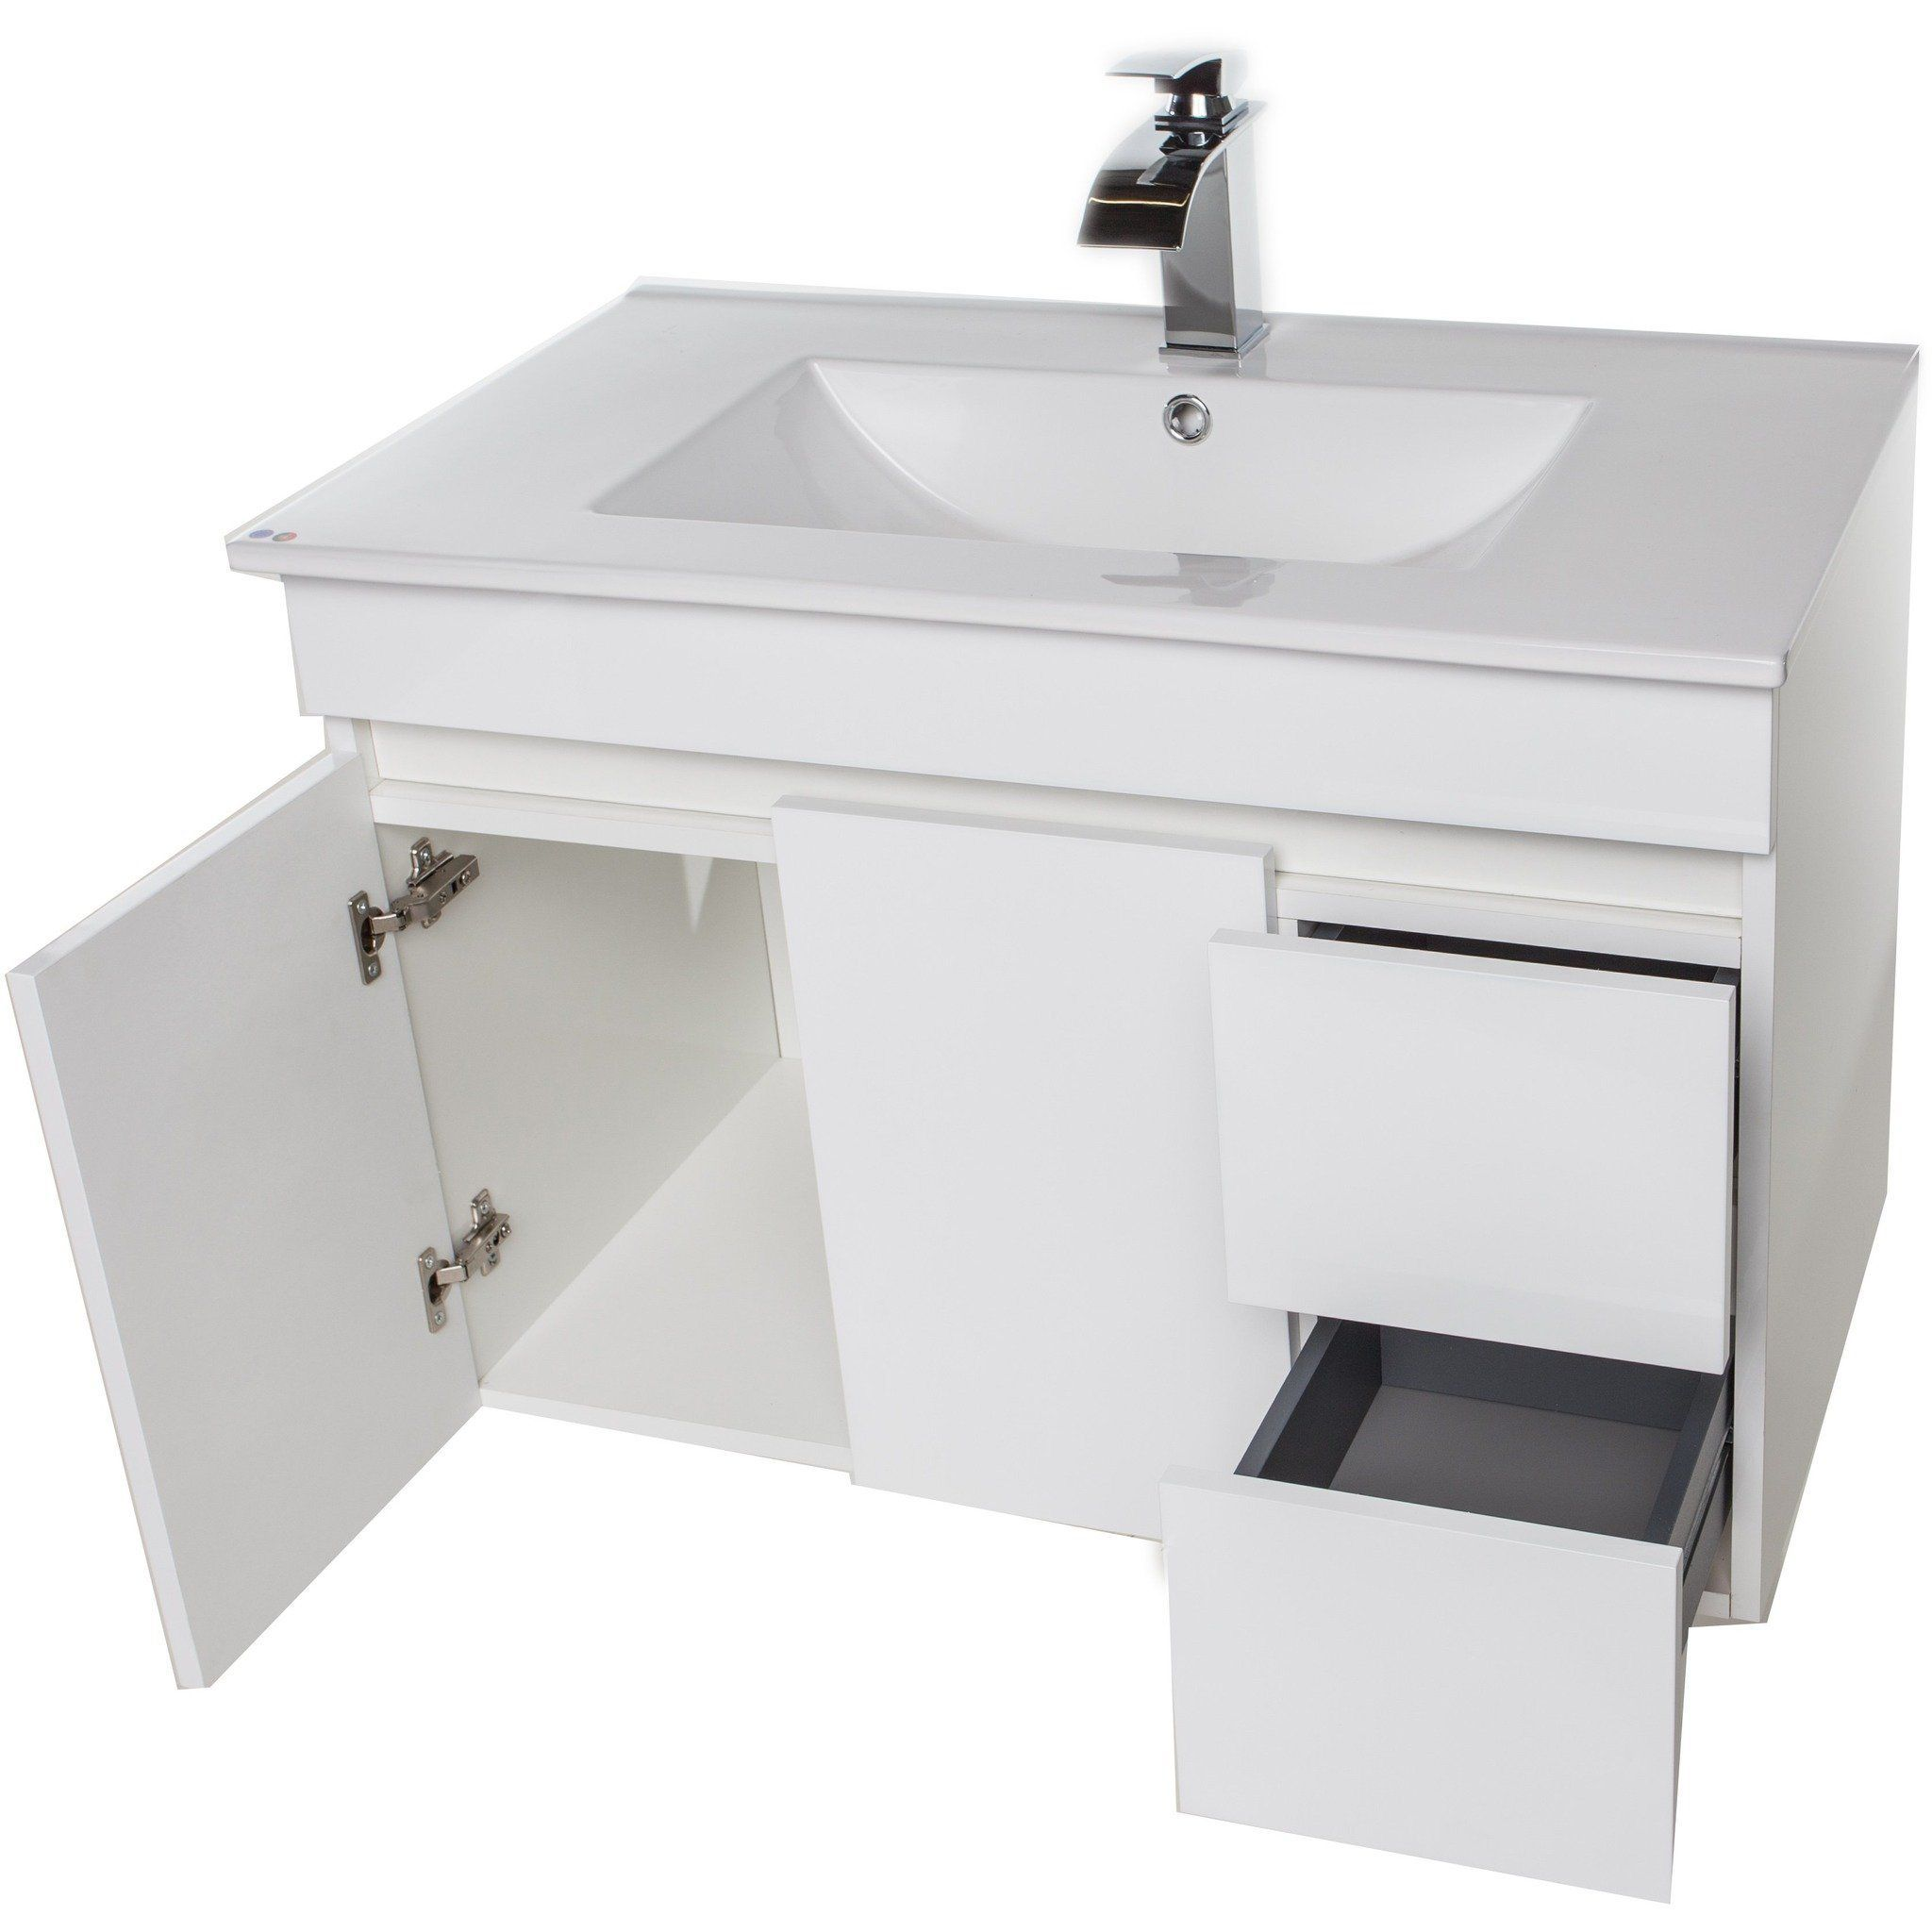 Wall Bathroom Vanity Cabinet Set Bath